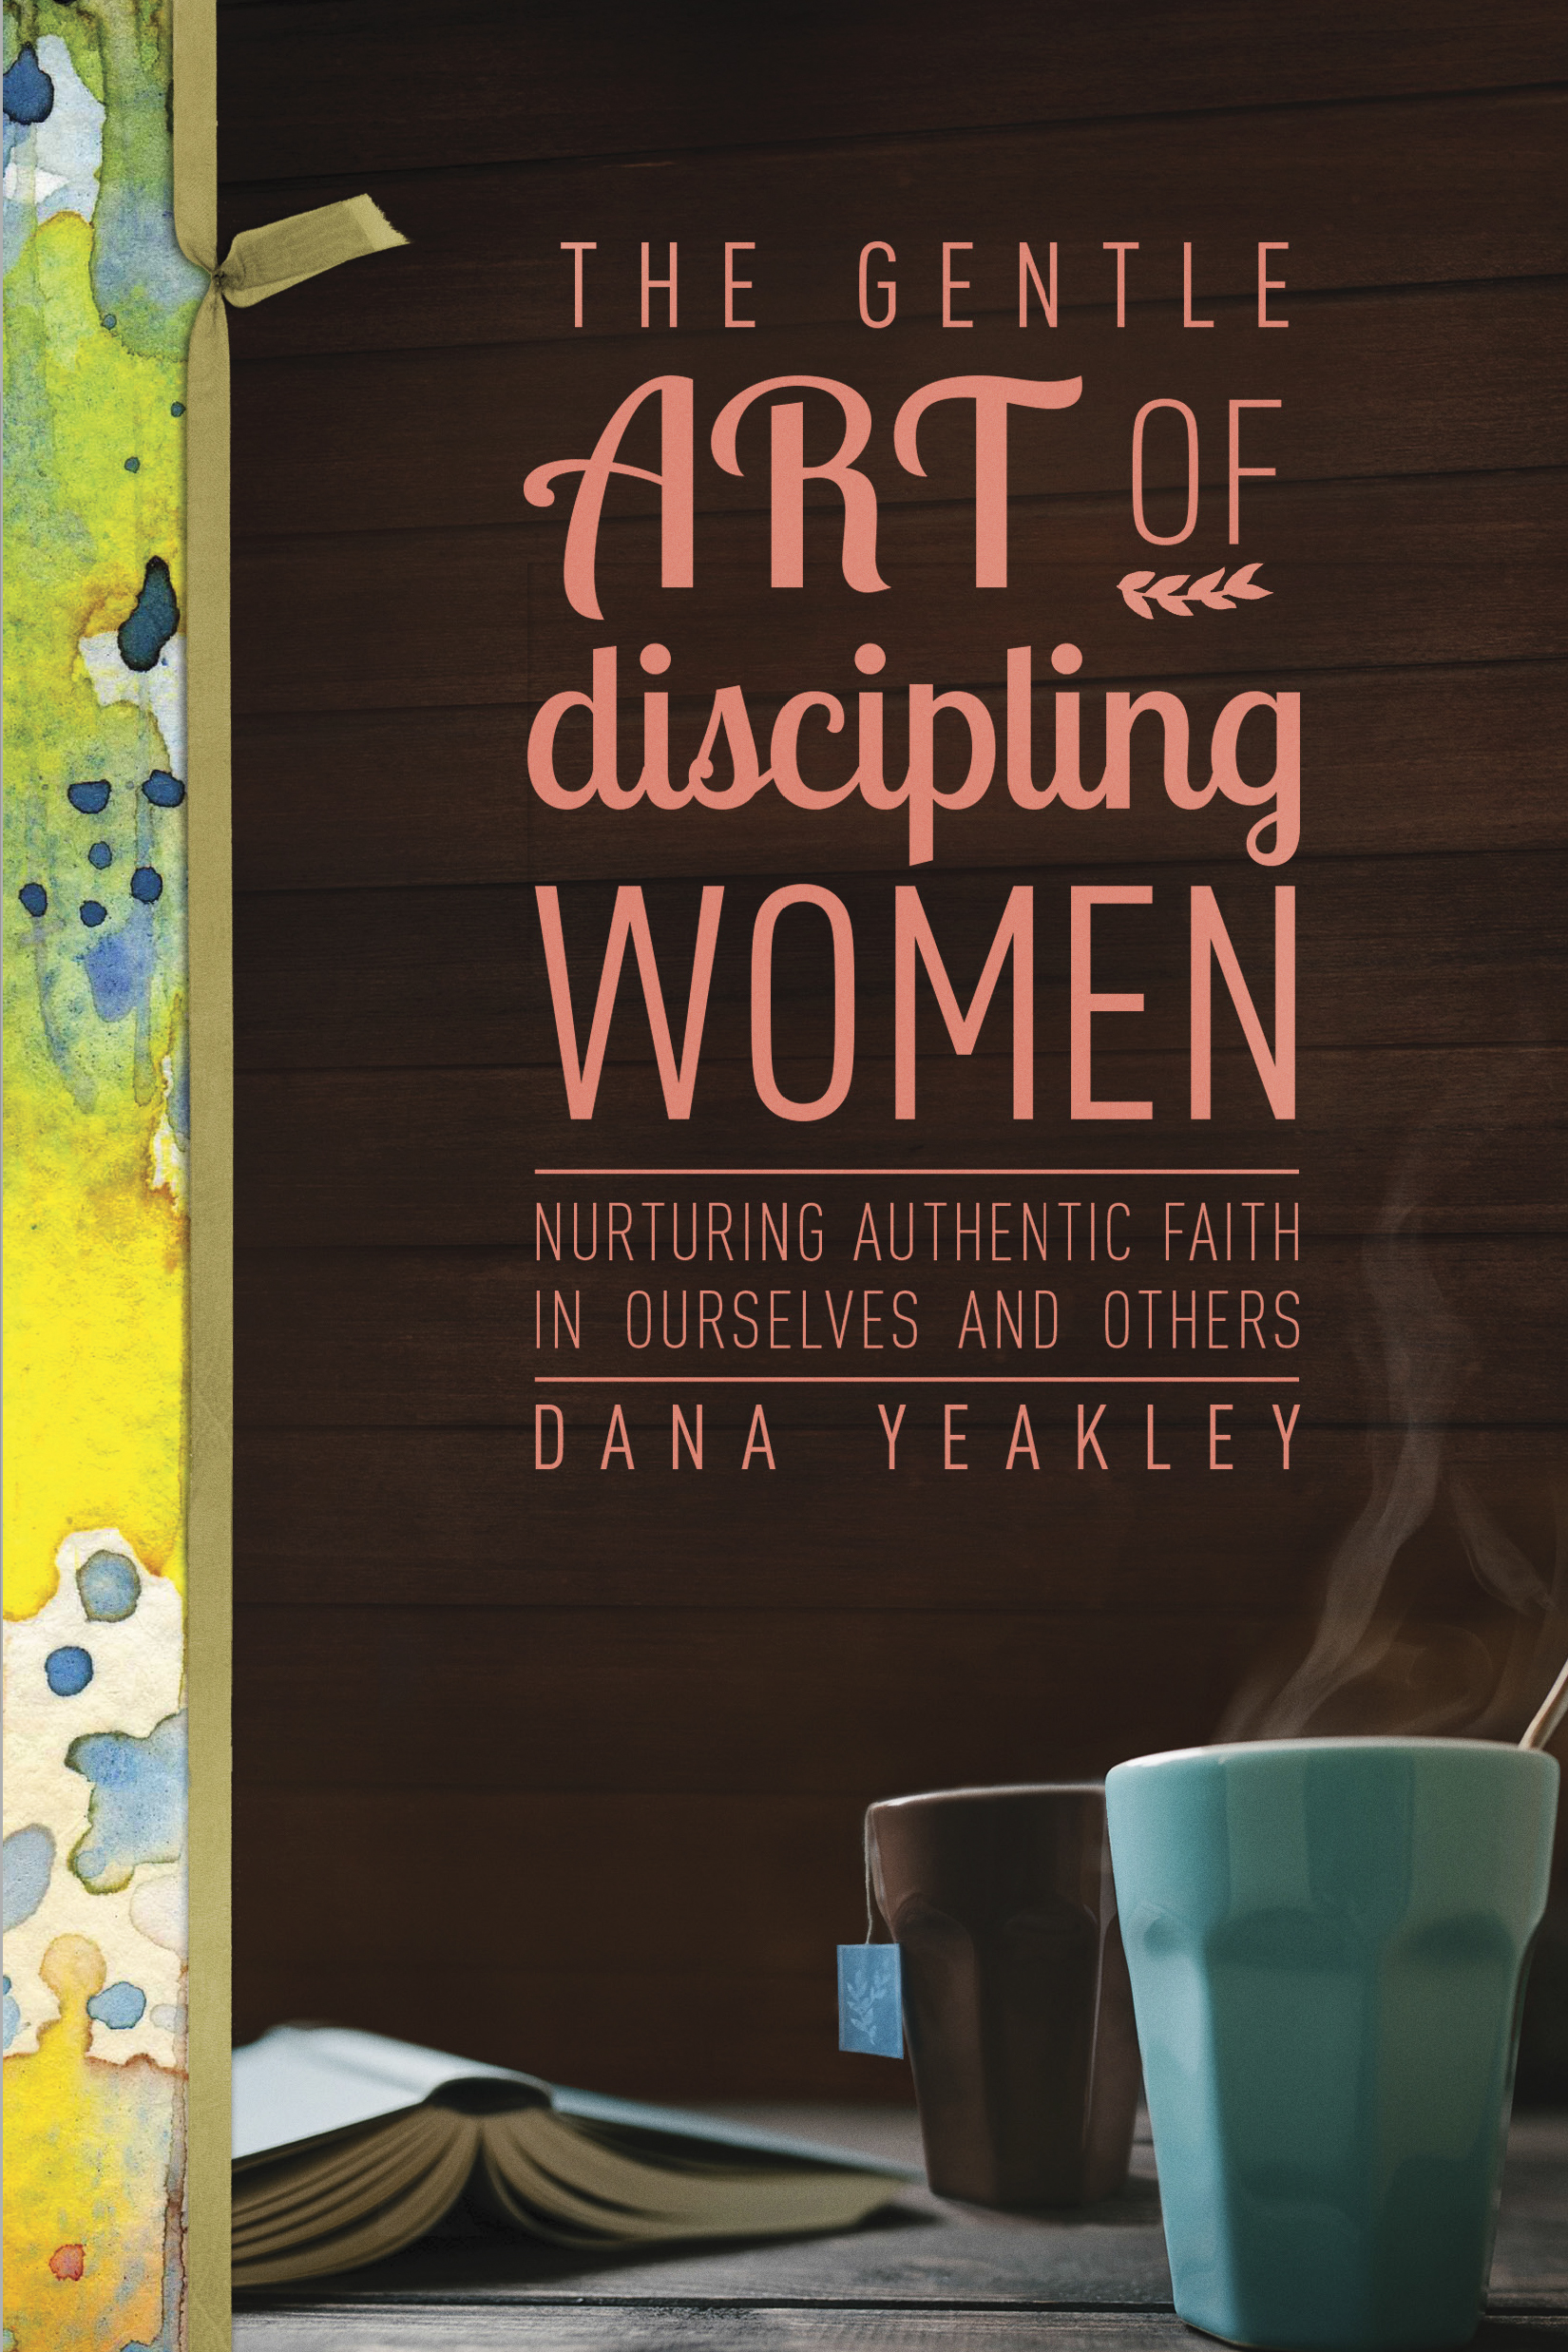 Cover of The Gentle Art of Discipling Women, by Dana Yeakley